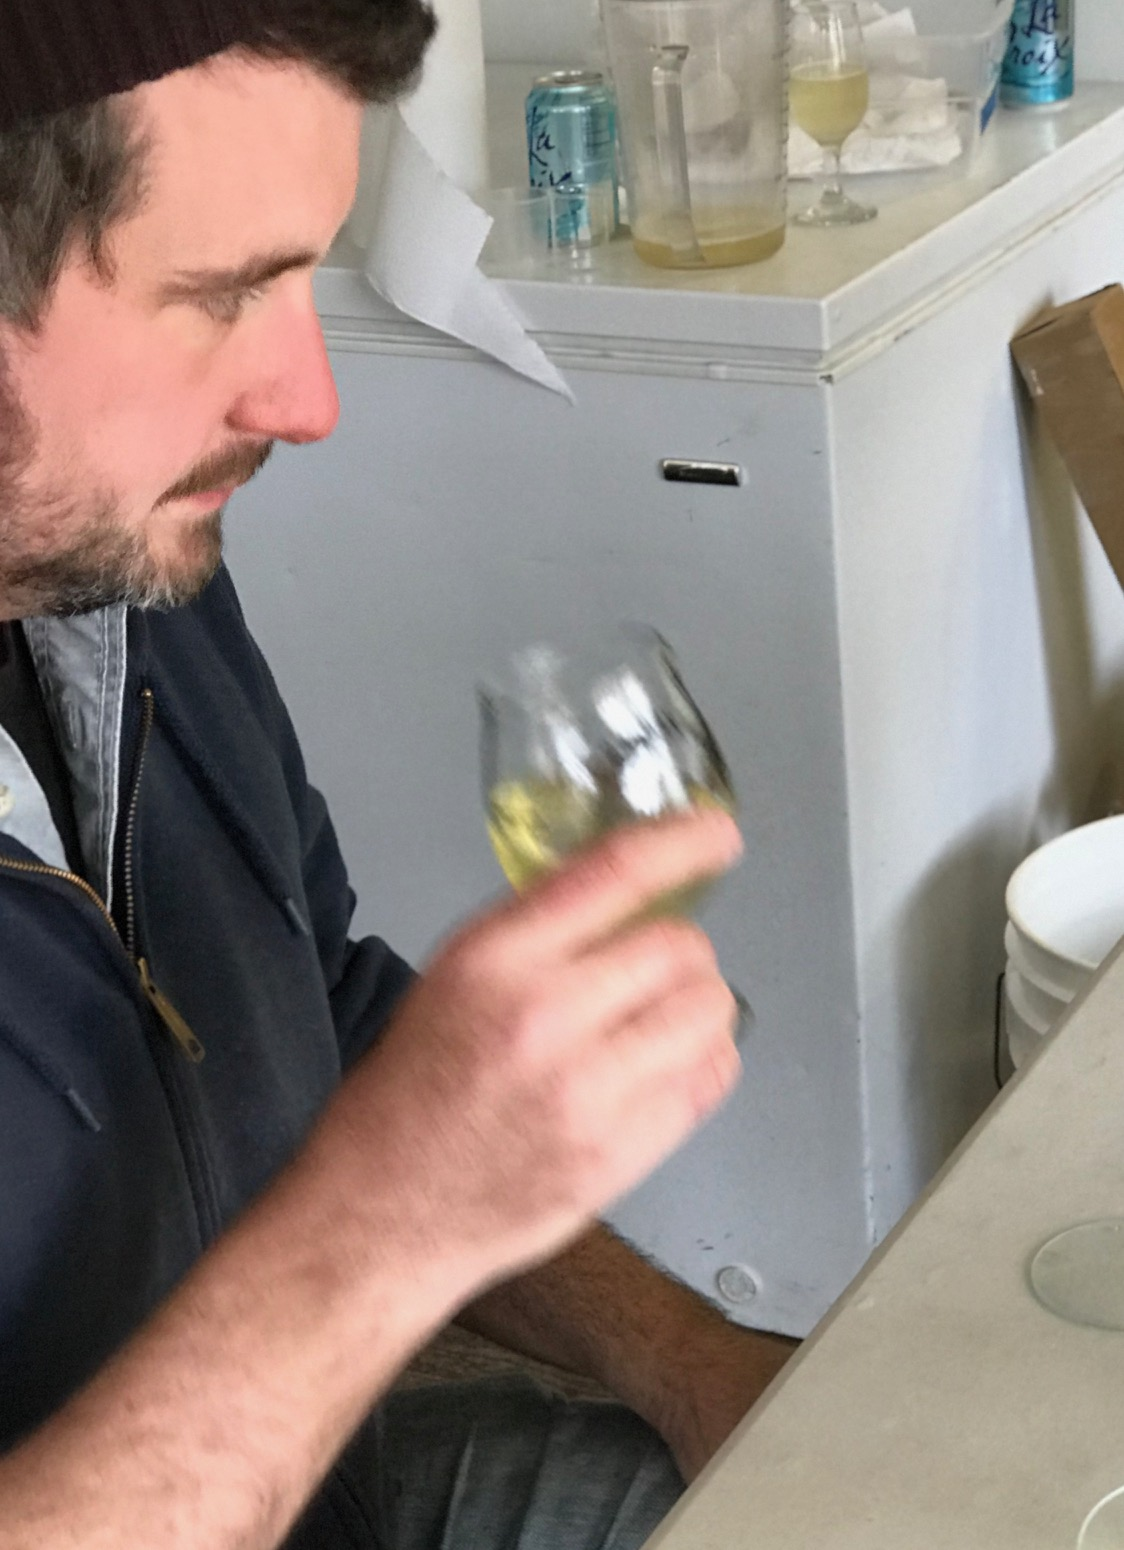 Nick checking on our new bittersweet cider.